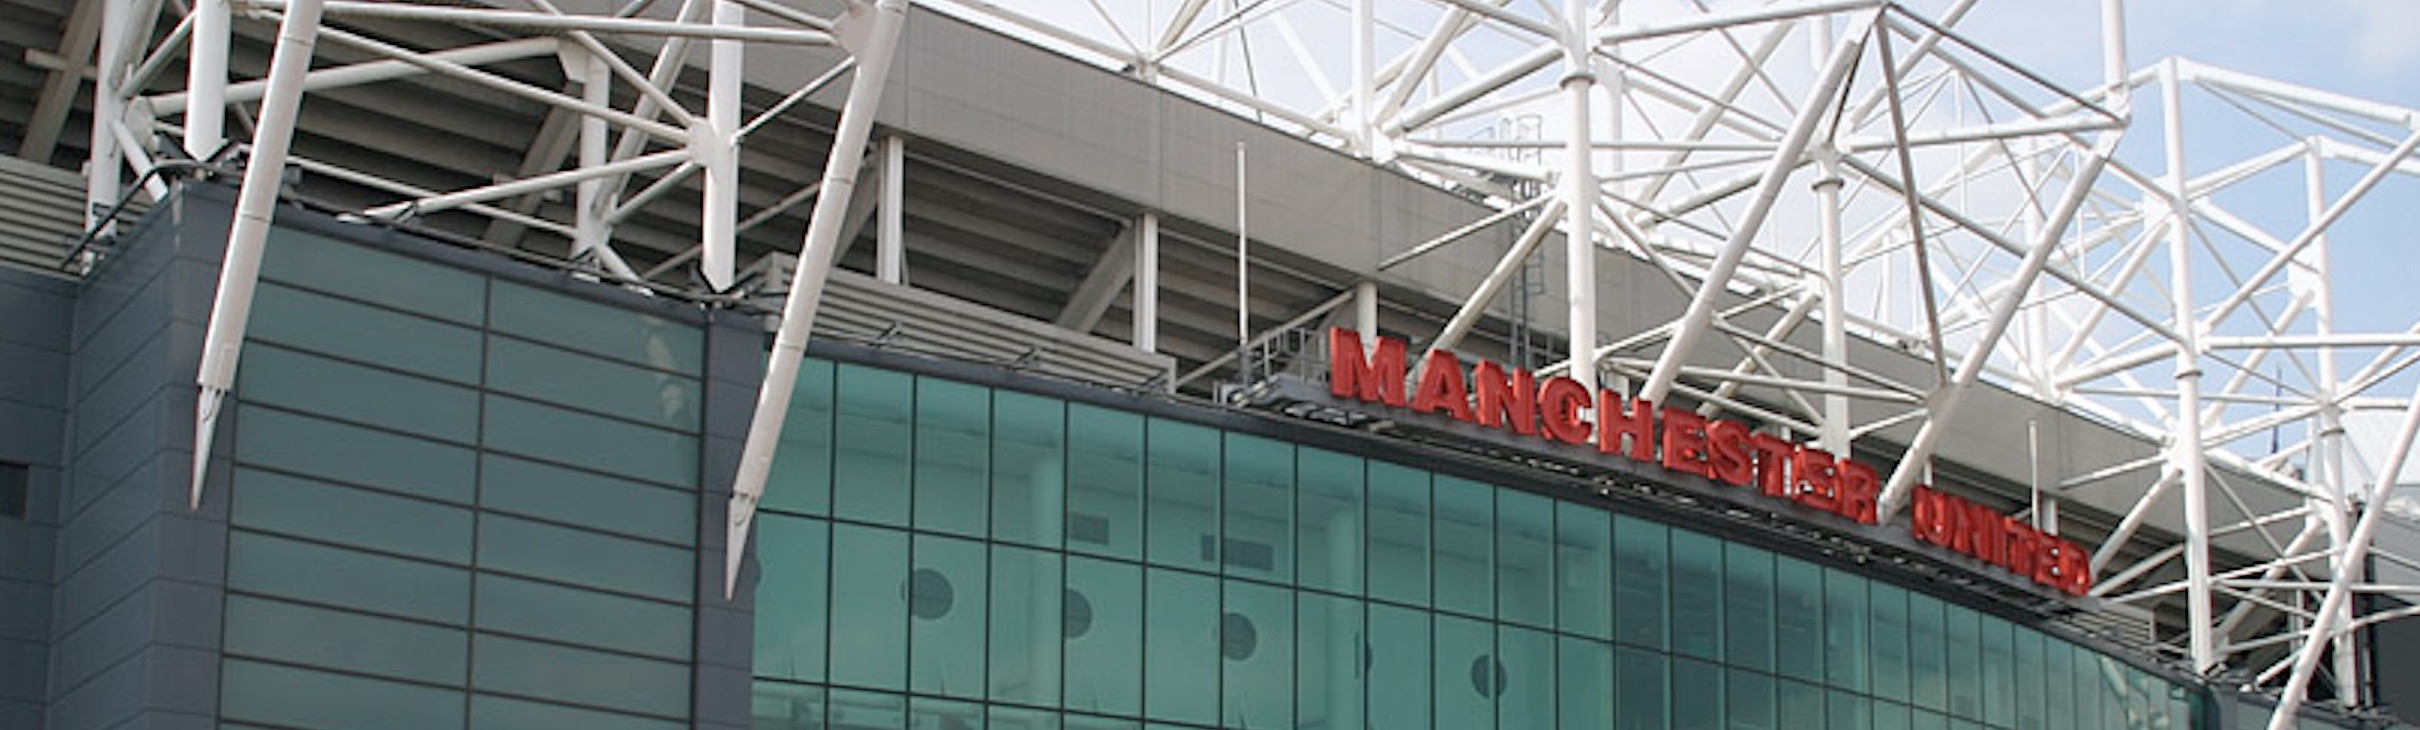 Man United V West Brom - Coach/Ferry & Hotel